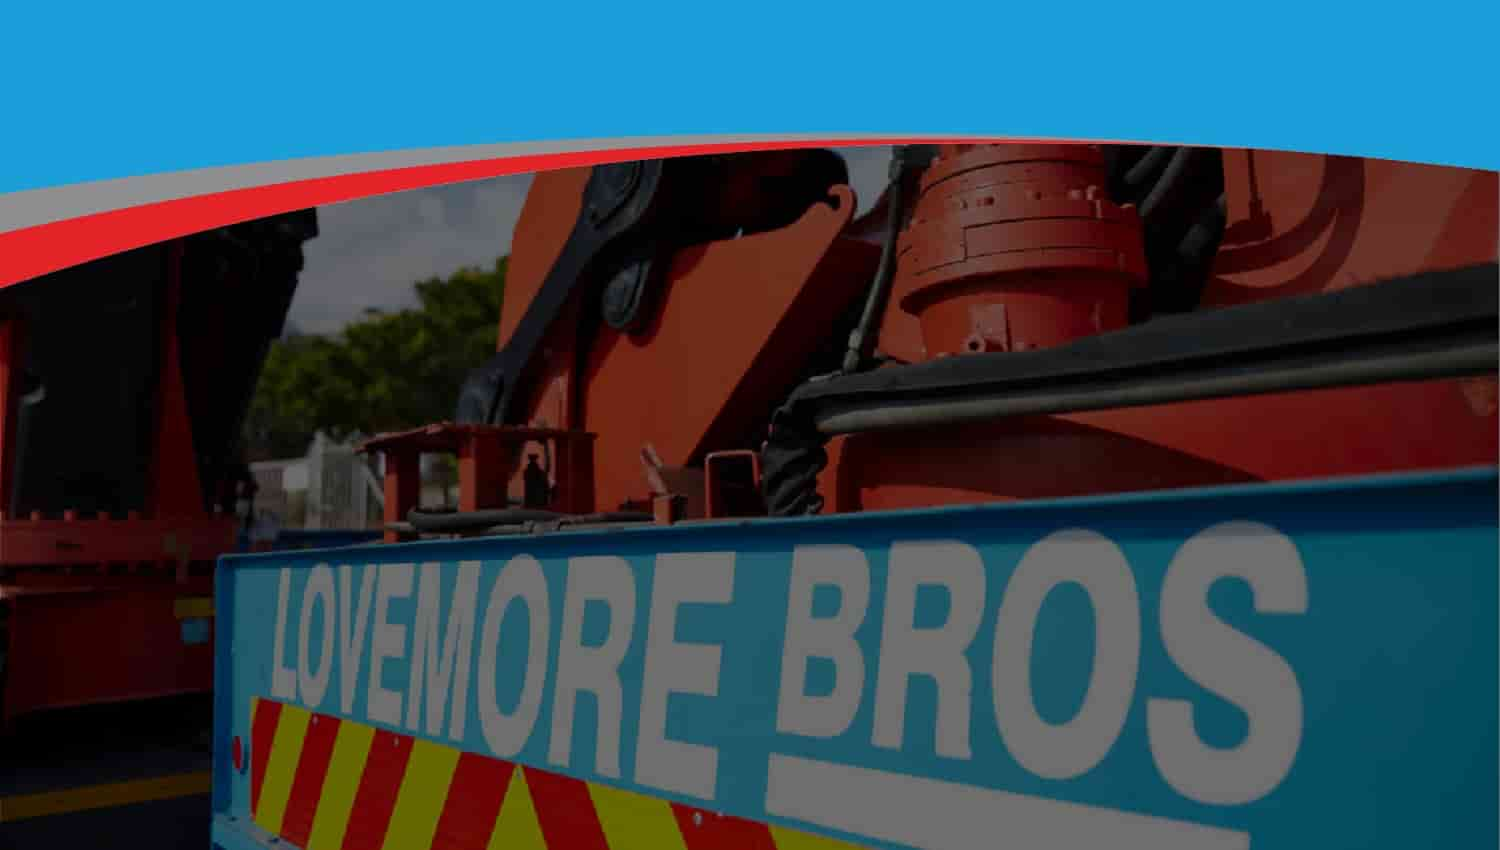 Lovemore Bros Machine movers, rigging and heavy lifting